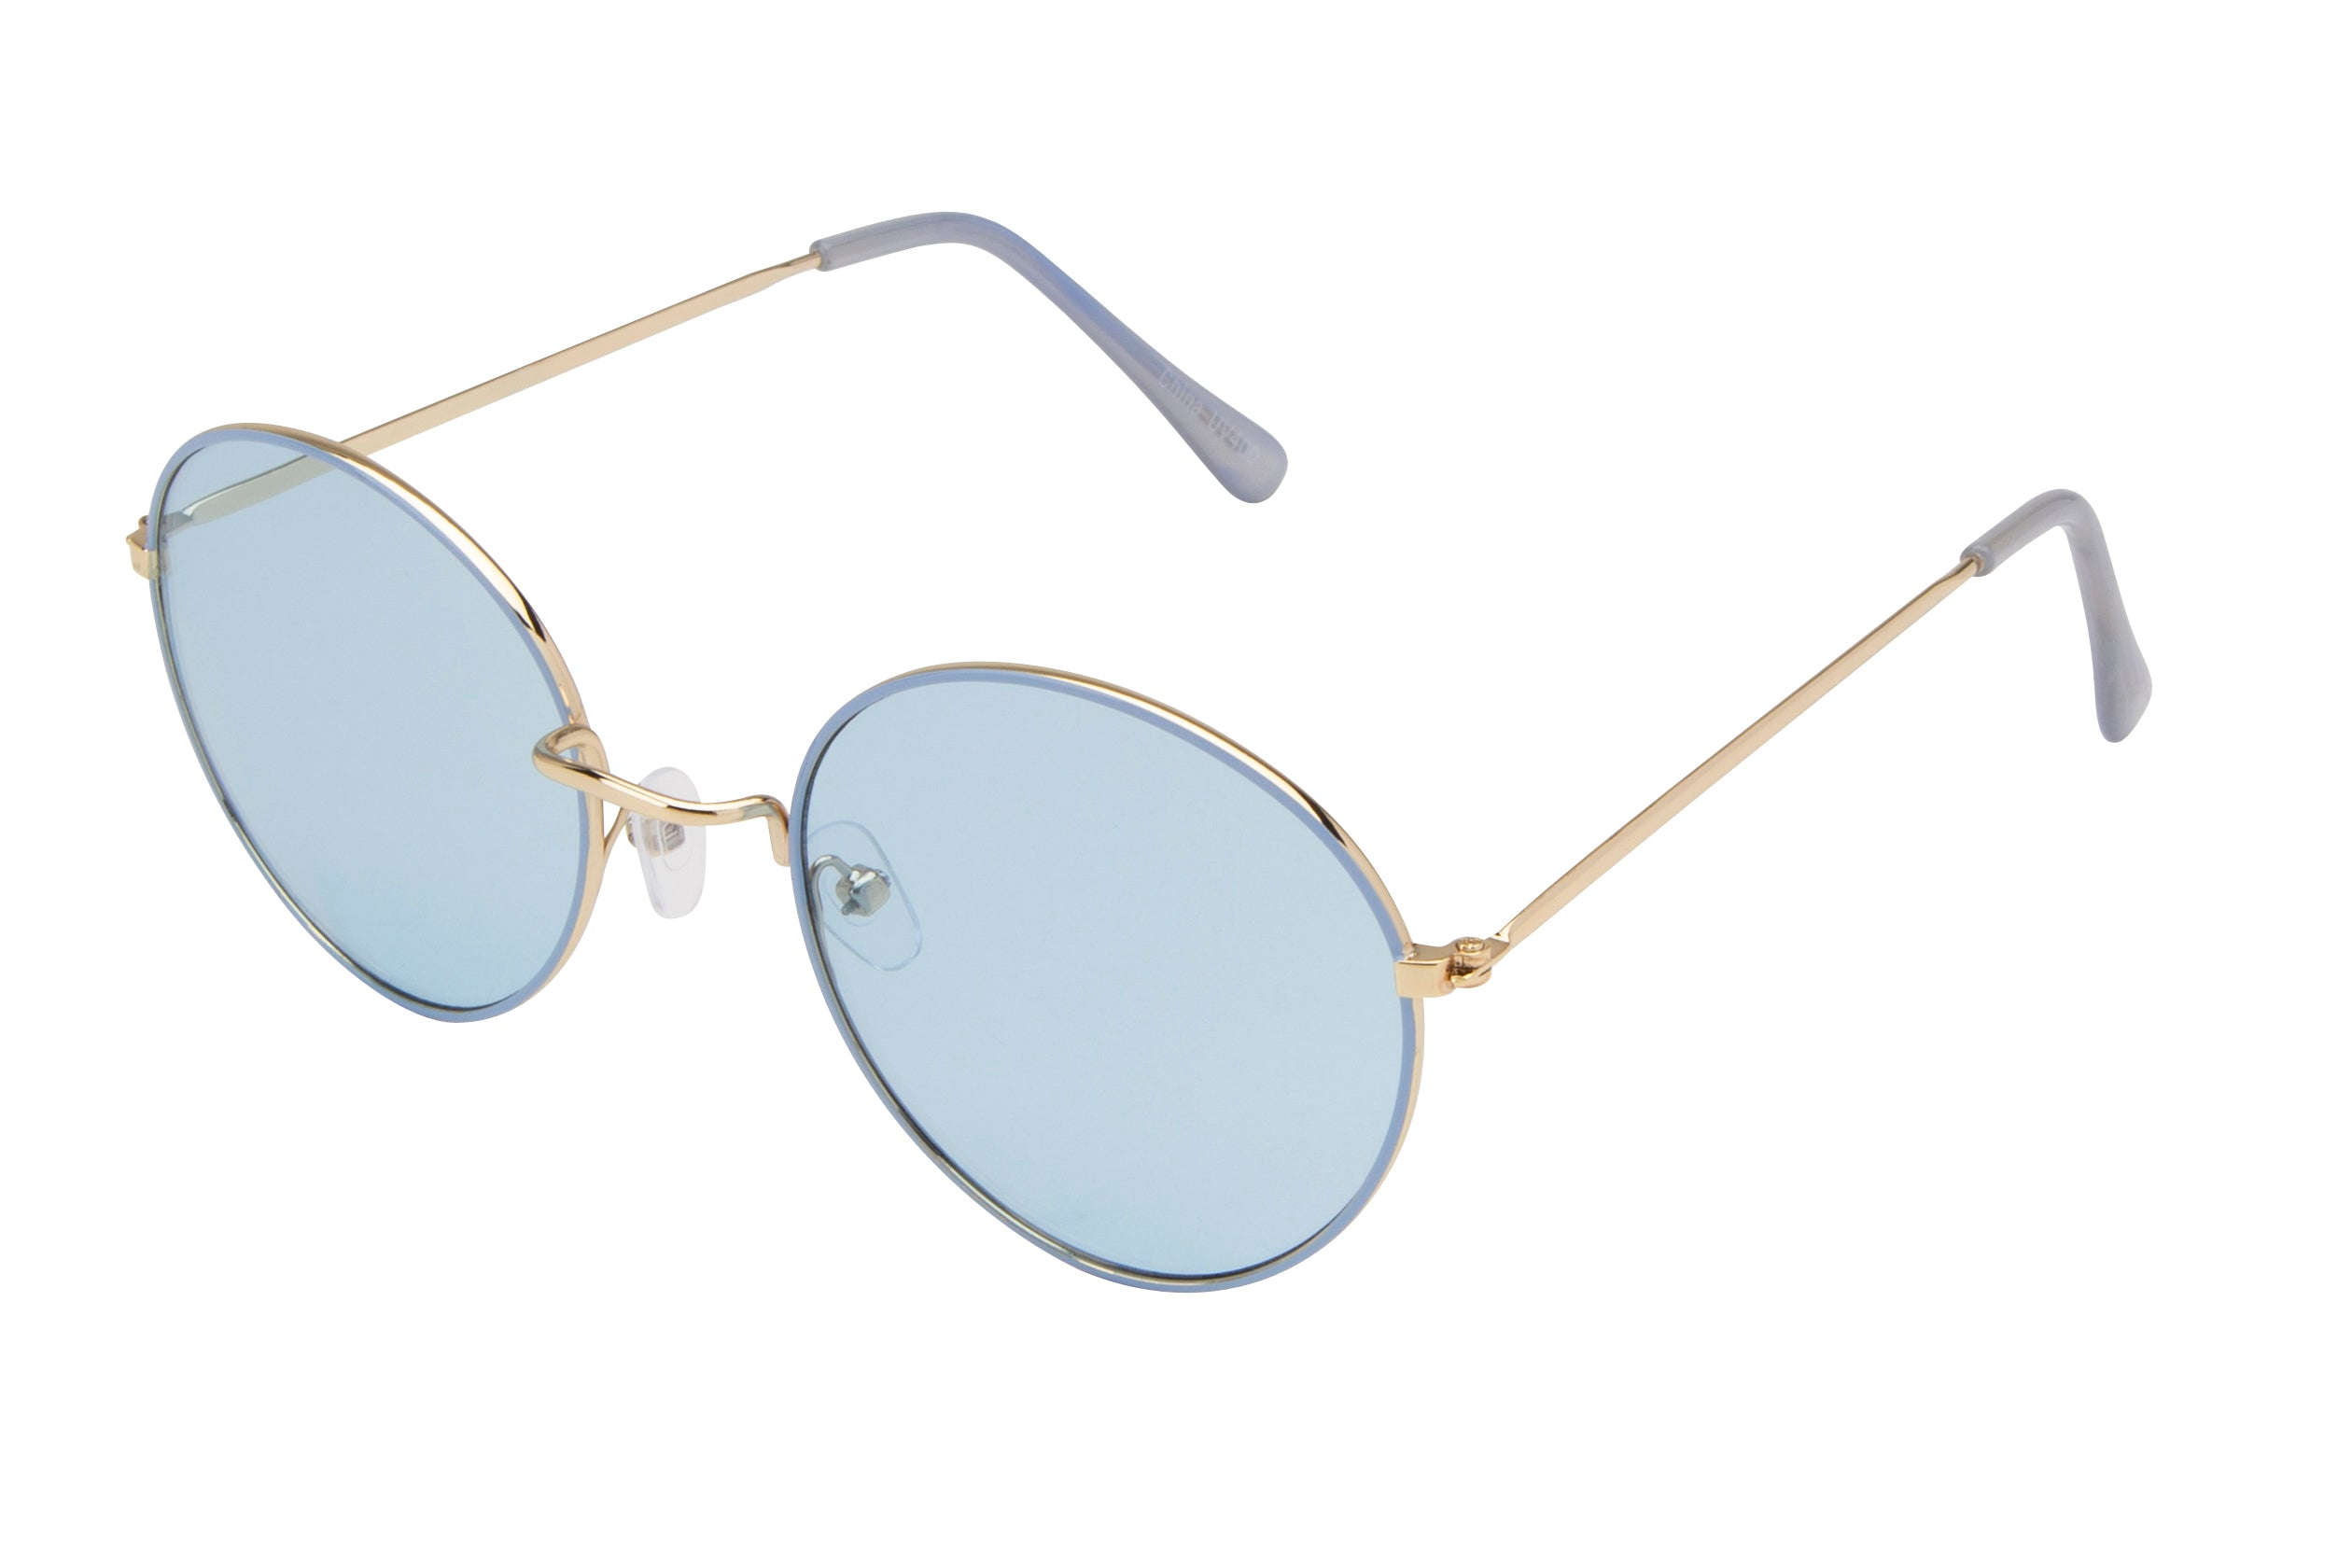 66151 - Vox Women's Retro Sunglasses